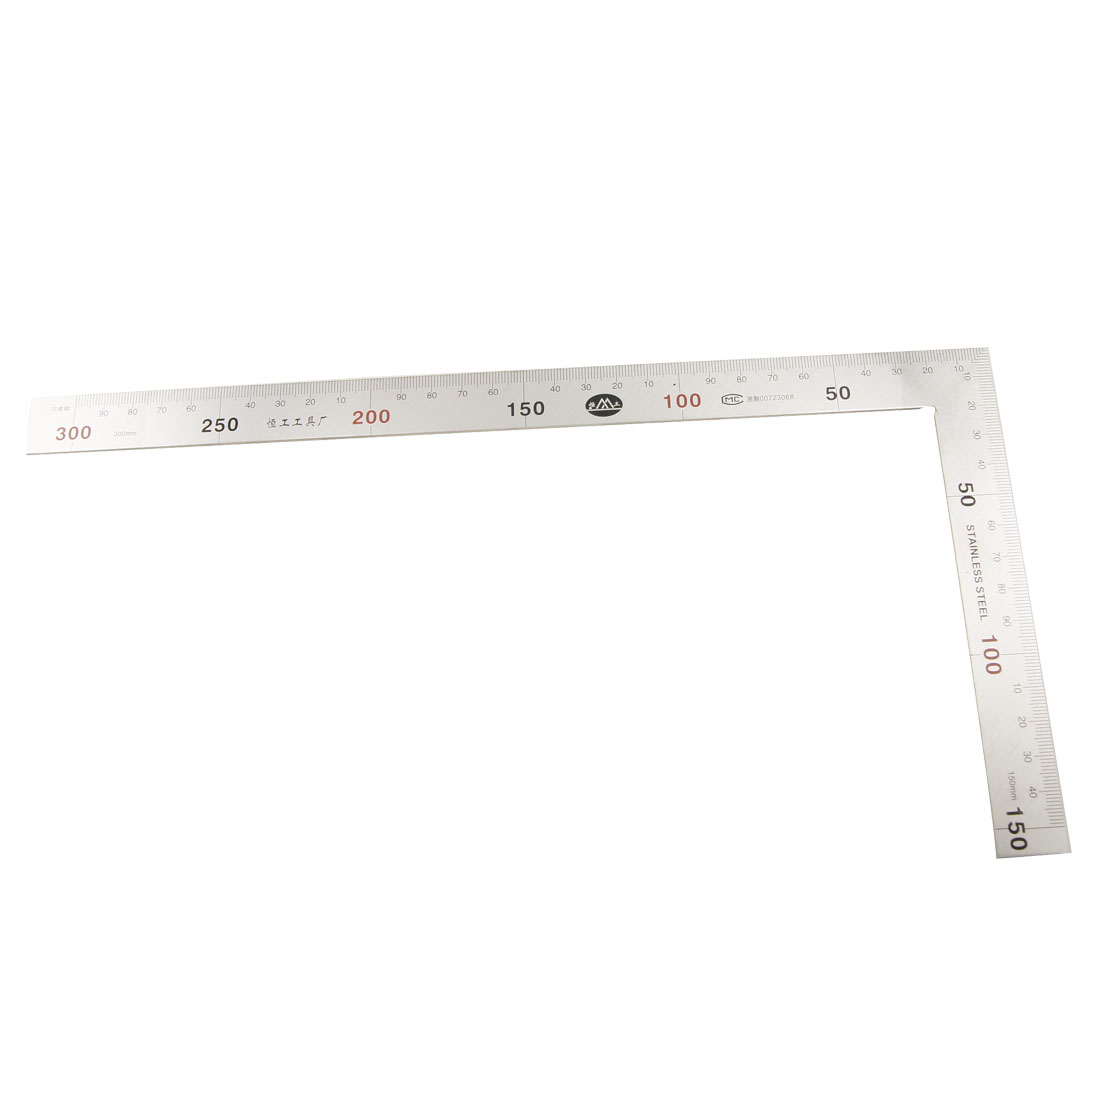 300mm 90 Degree Double Side Angle Metric Try Mitre Square Ruler